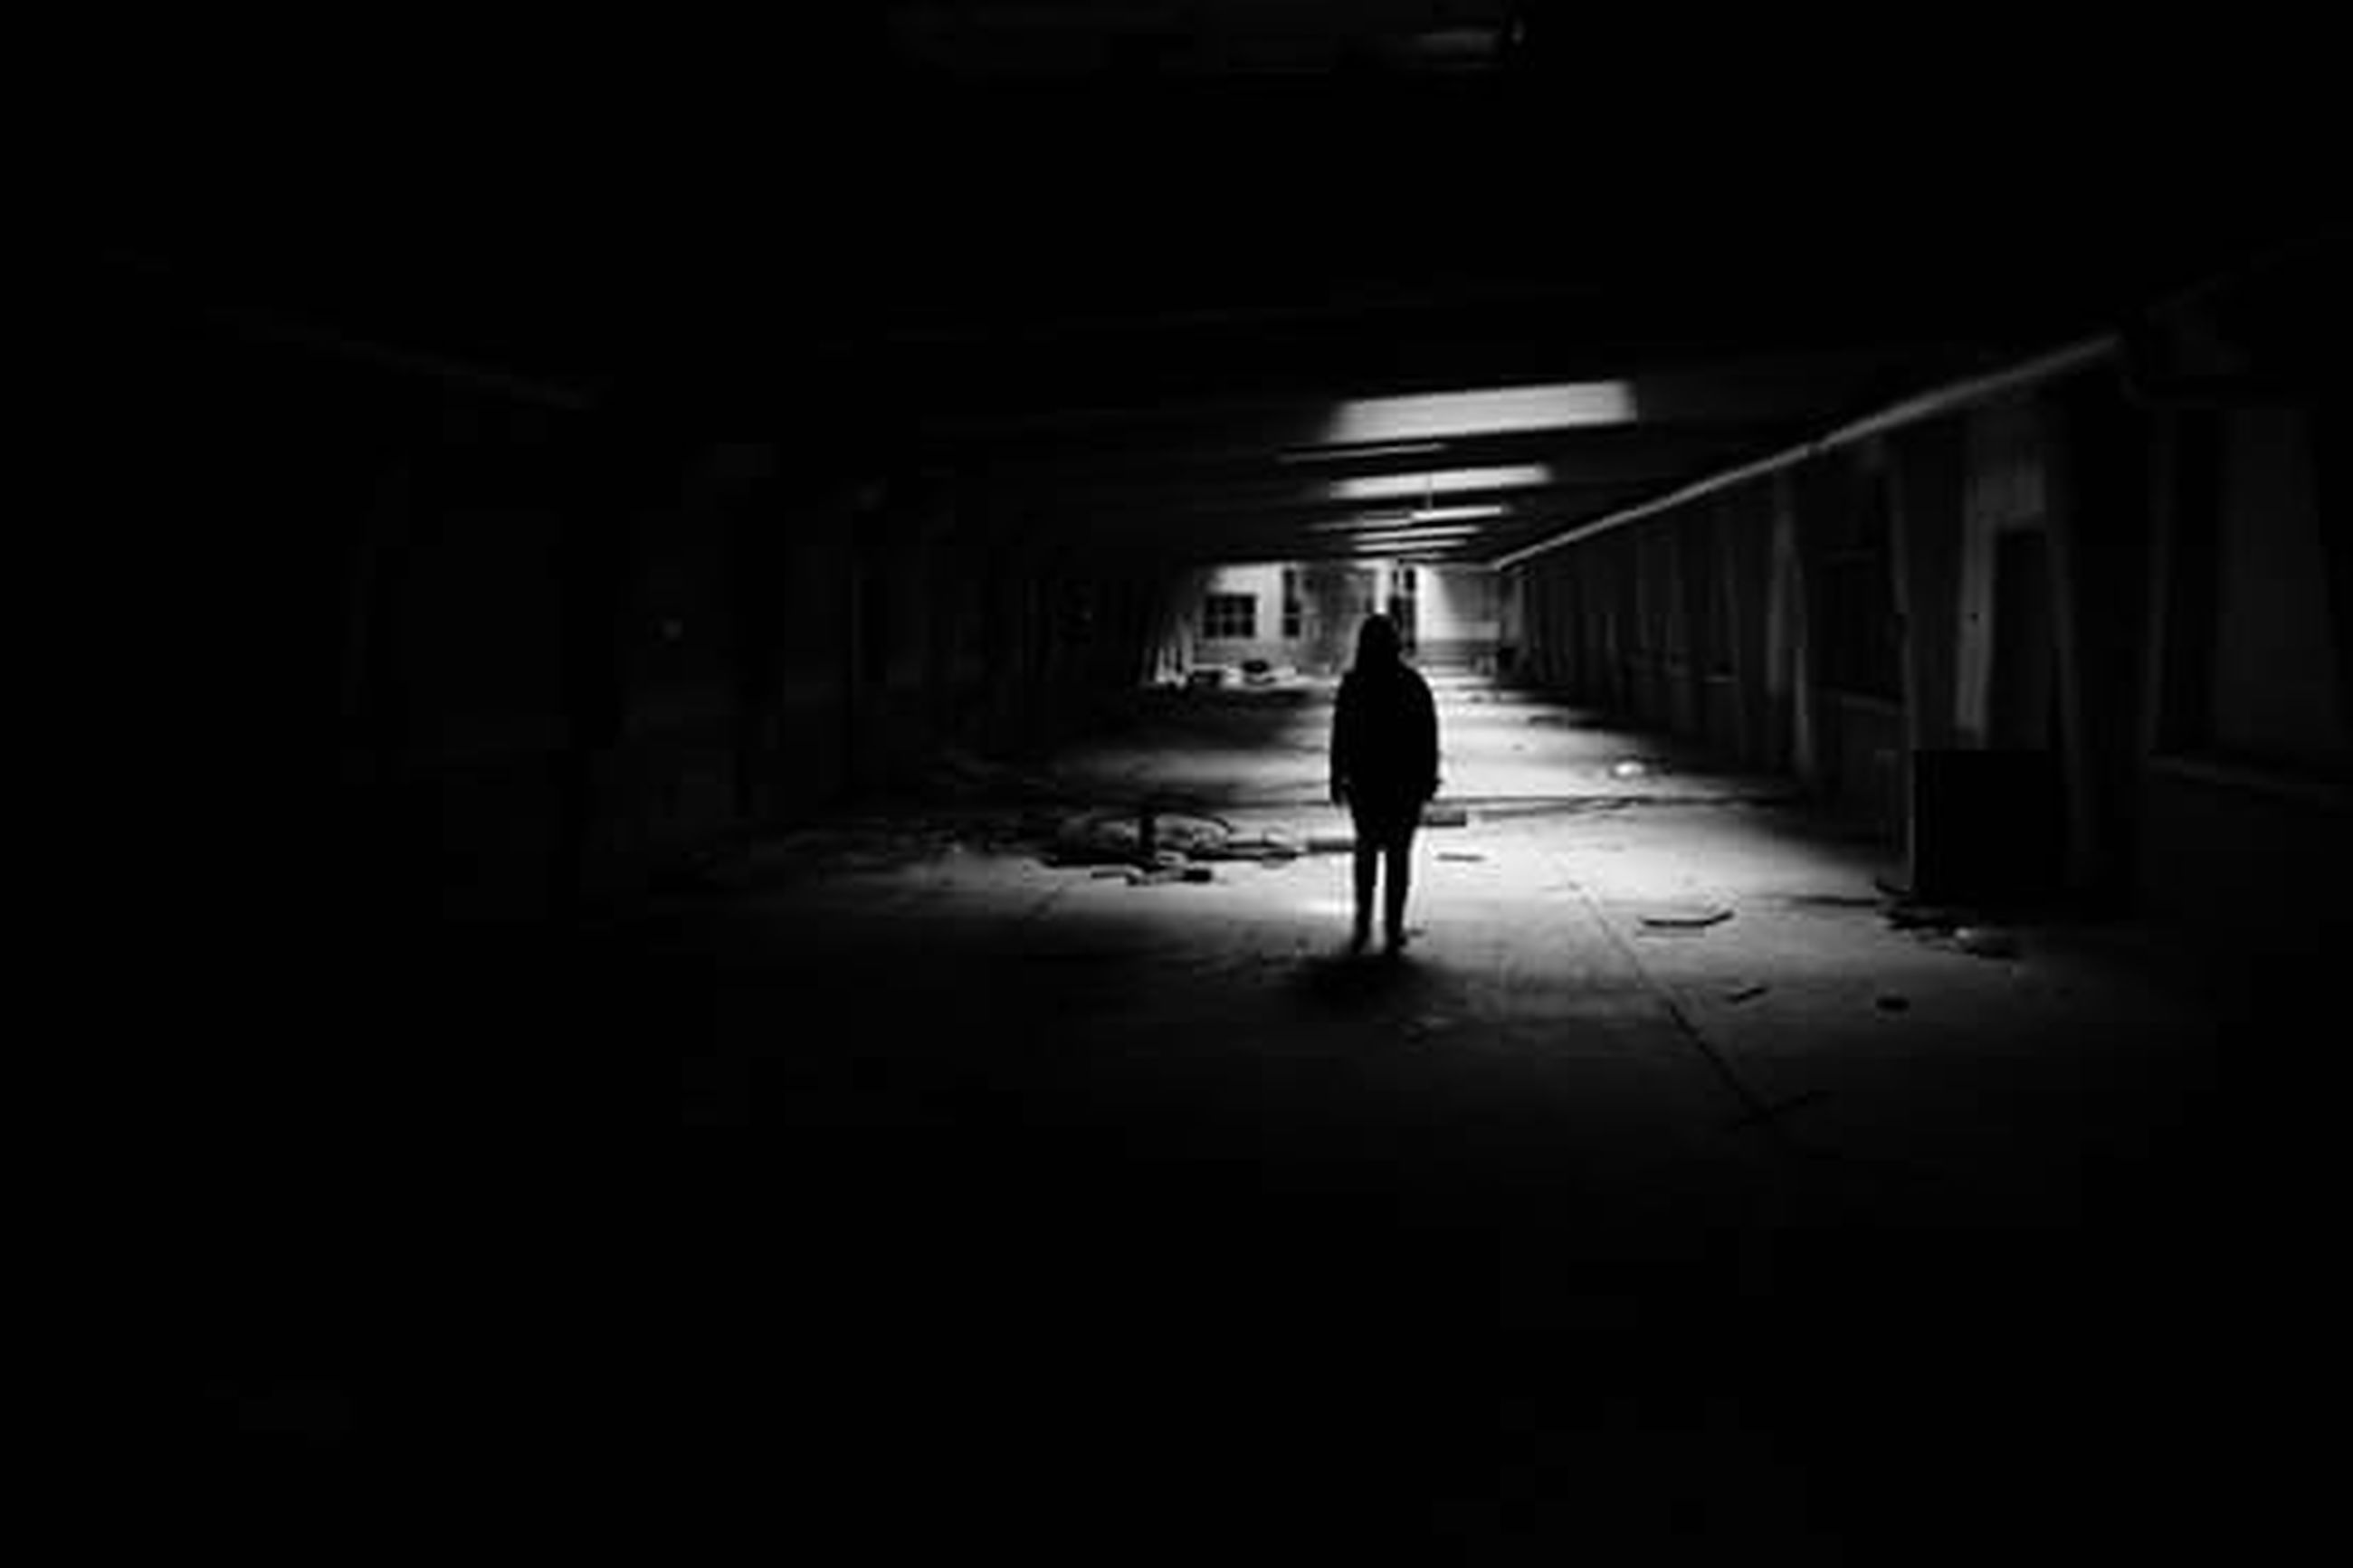 walking, full length, indoors, rear view, lifestyles, architecture, men, silhouette, tunnel, built structure, the way forward, illuminated, person, leisure activity, corridor, unrecognizable person, standing, on the move